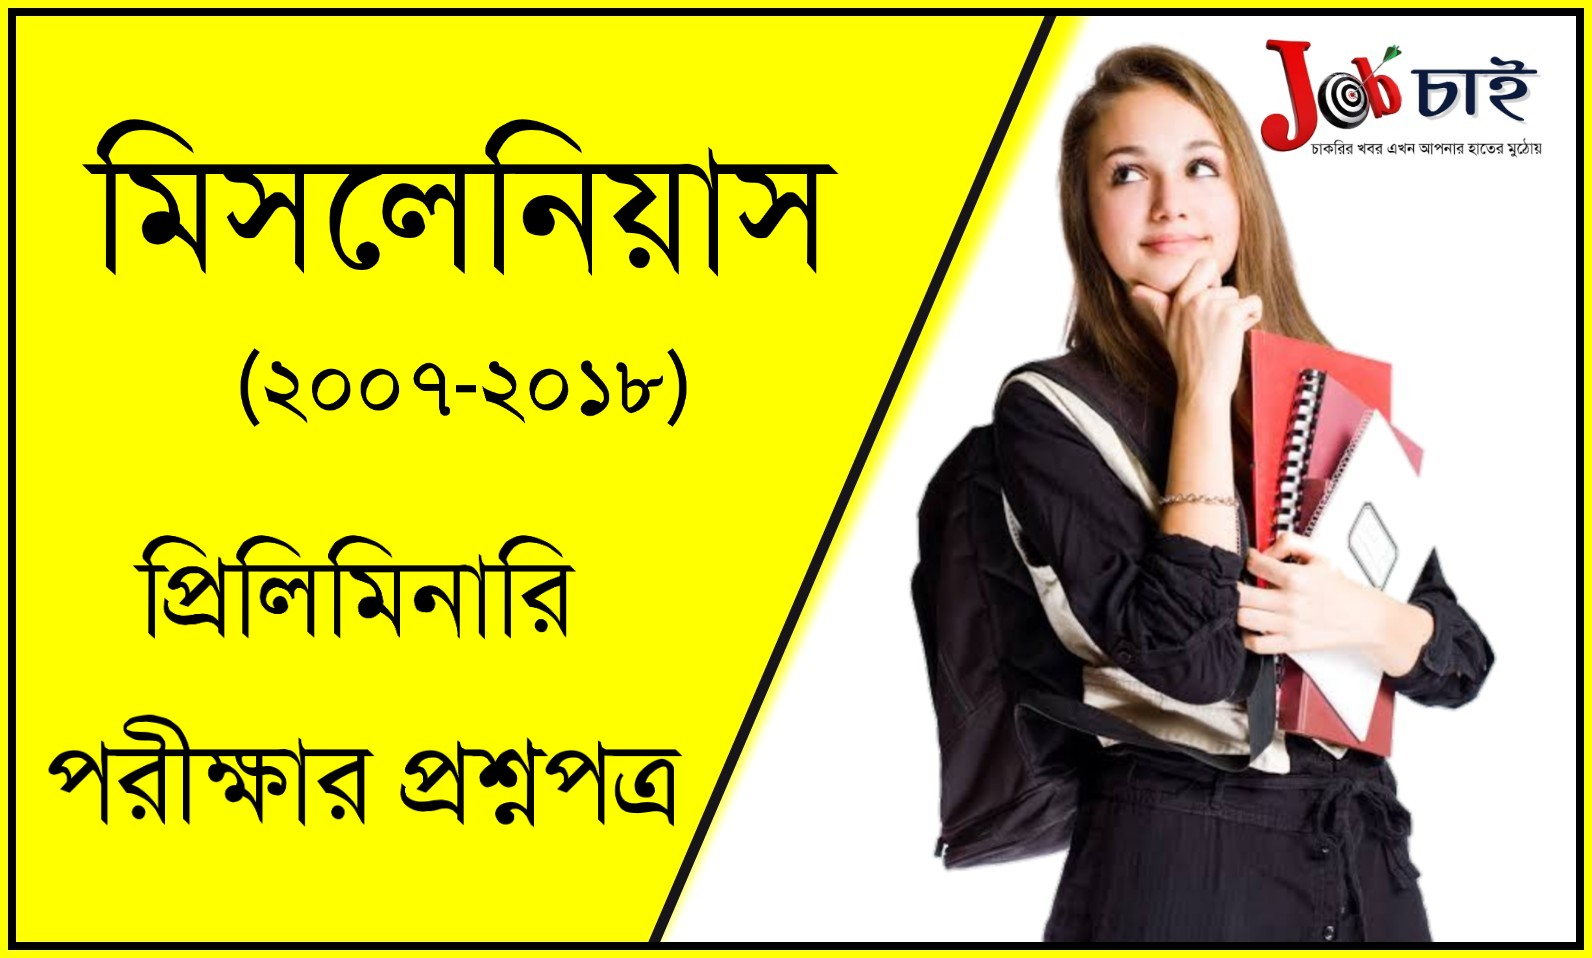 PSC Miscellaneous Preliminary (2007-2018) Question Papers PDF in Bengali | PSC Miscellaneous Previous Year Question Papers